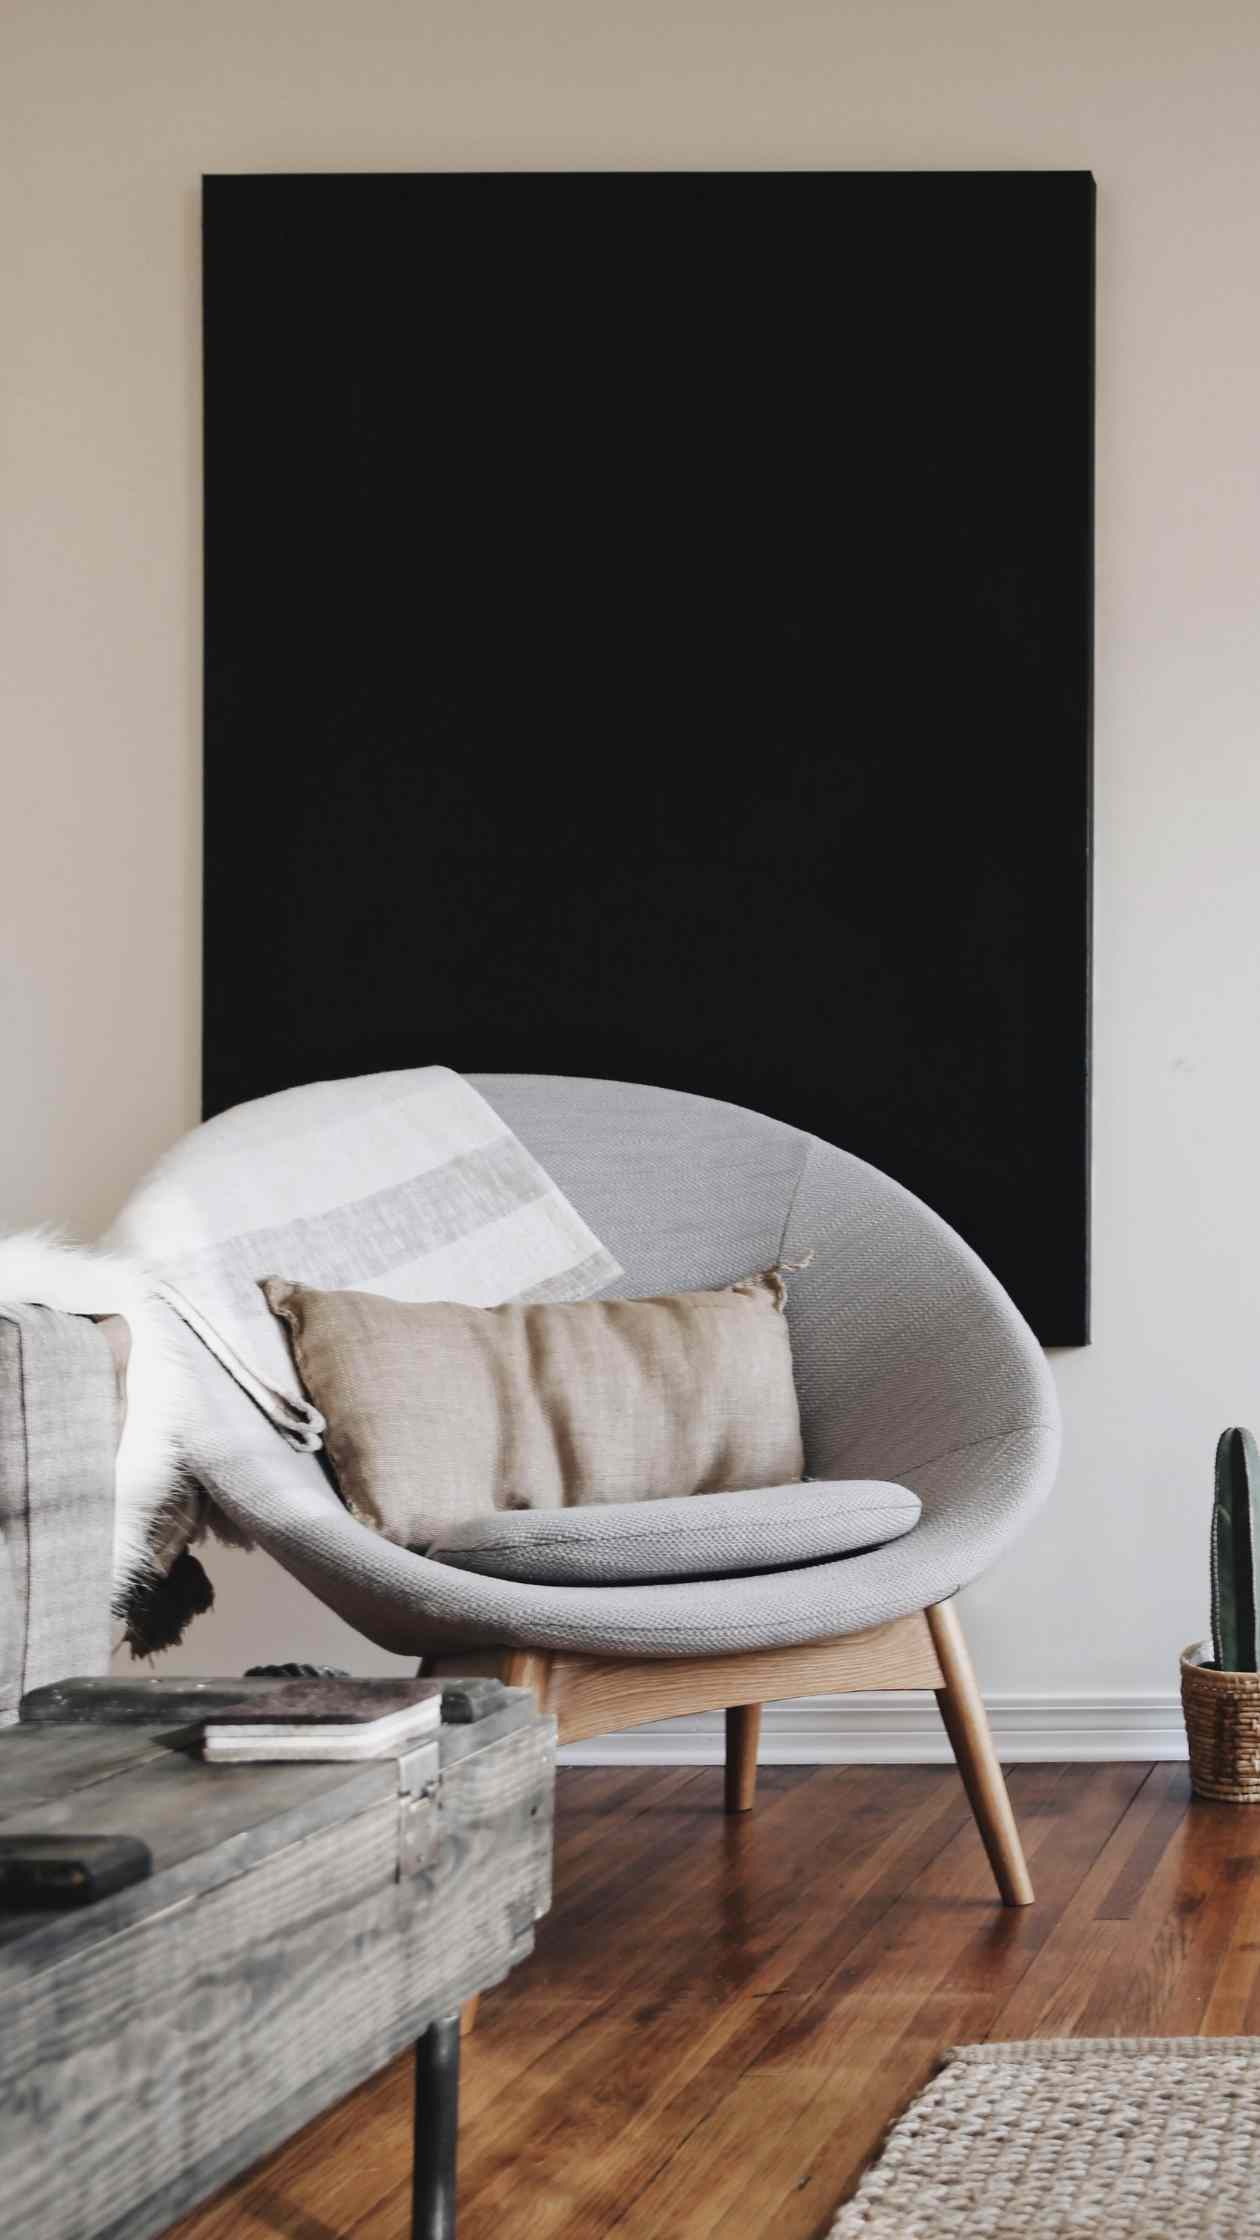 A beautiful reading chair!